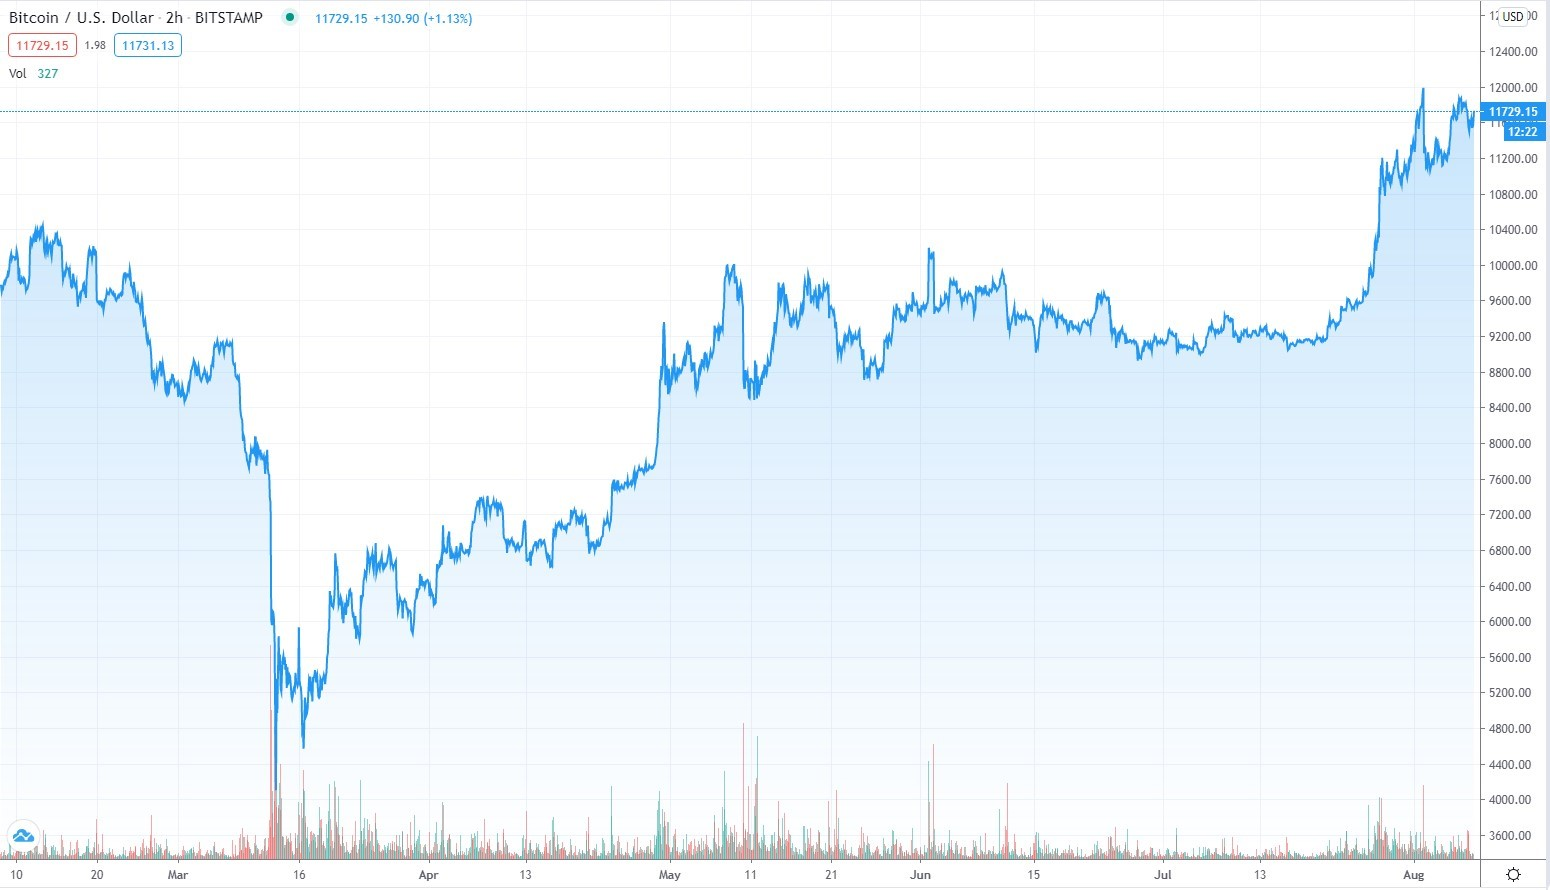 Graph showing Bitcoin price fall in March 2020 following by quick rise Source: tradingview.com